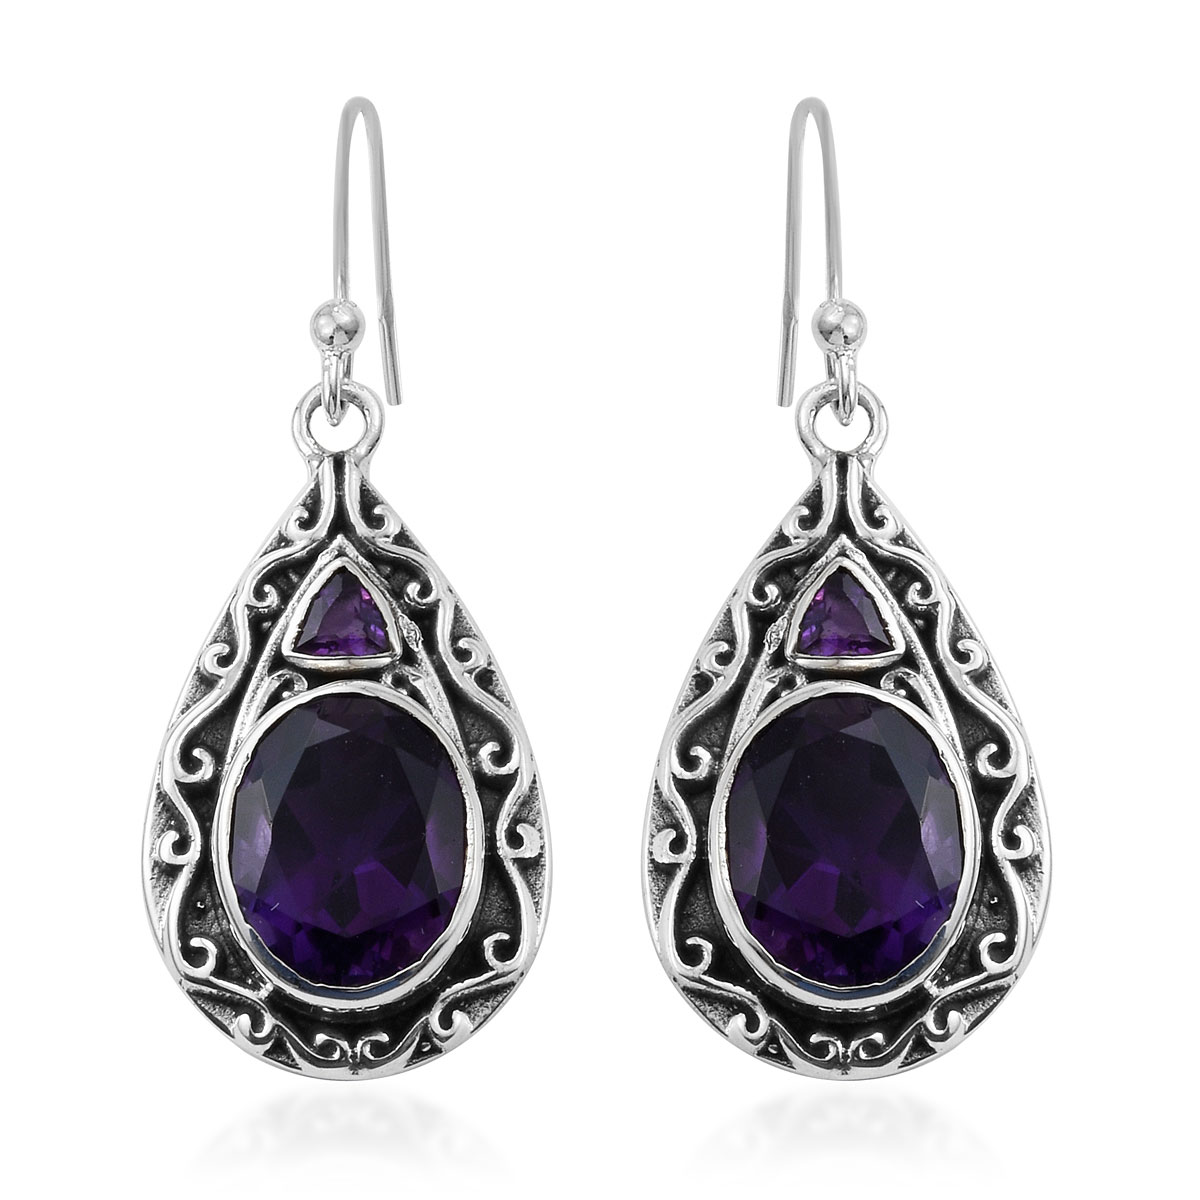 Artisan Crafted Lusaka Amethyst Earrings in Sterling Silver 4.73 ctw